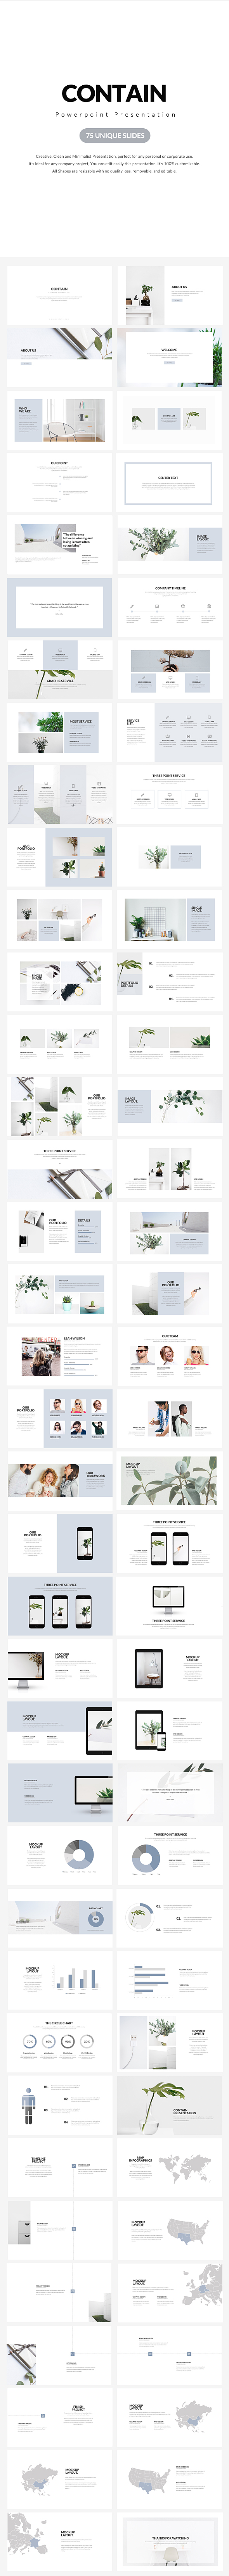 Contain Powerpoint Presentation - Creative PowerPoint Templates